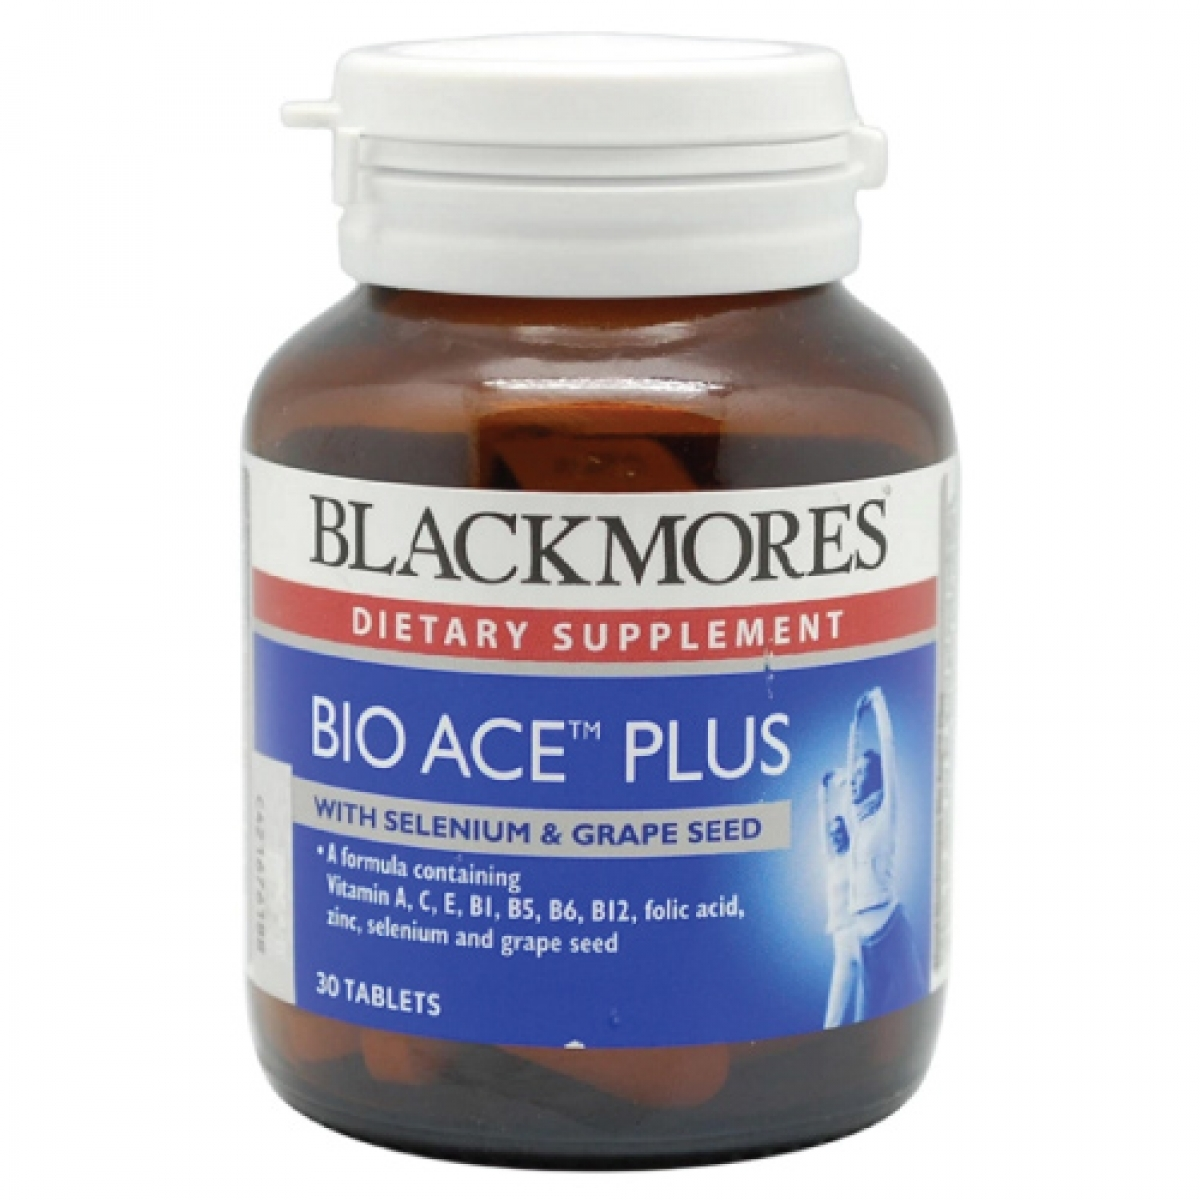 Blackmores Bio ACE Plus